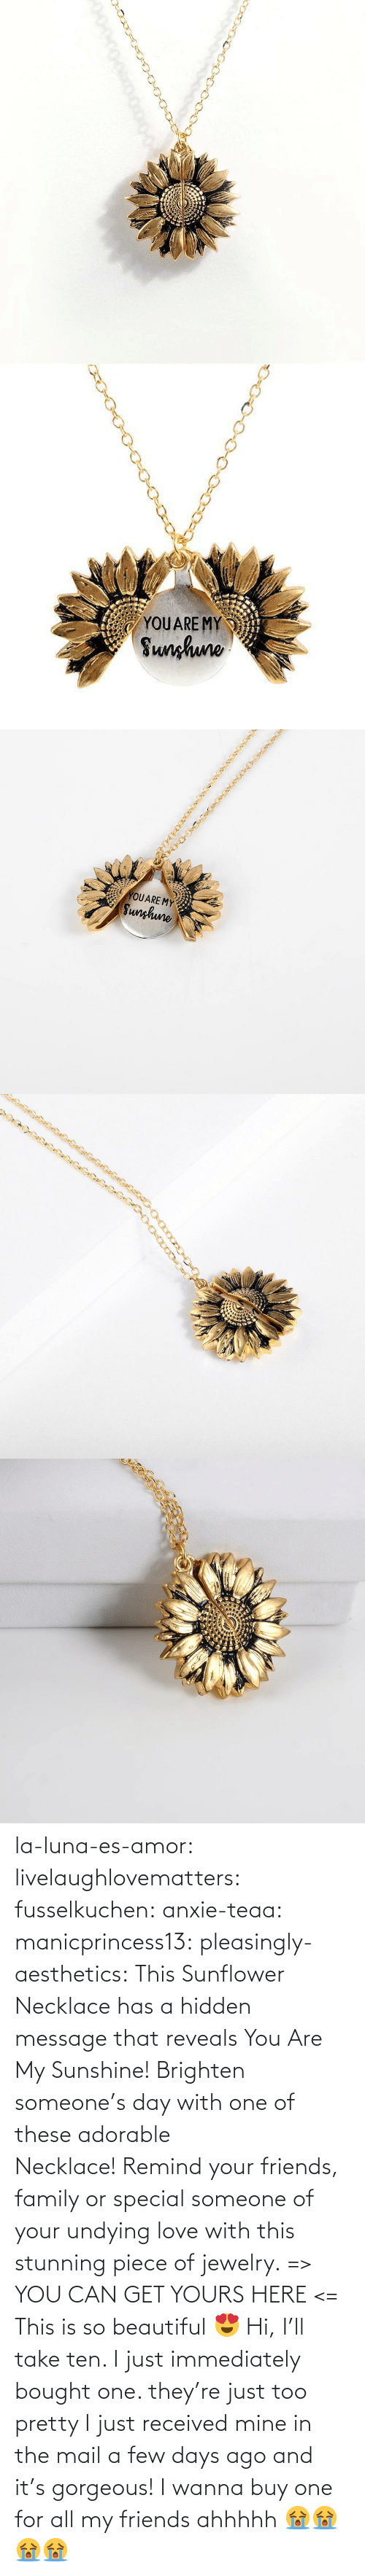 Gt: YOUARE MY  Sunhuno   YOUARE MY  Sunghune la-luna-es-amor:  livelaughlovematters: fusselkuchen:  anxie-teaa:   manicprincess13:   pleasingly-aesthetics:  This Sunflower Necklace has a hidden message that reveals You Are My Sunshine! Brighten someone's day with one of these adorable Necklace! Remind your friends, family or special someone of your undying love with this stunning piece of jewelry. => YOU CAN GET YOURS HERE <=   This is so beautiful 😍    Hi, I'll take ten.    I just immediately bought one. they're just too pretty   I just received mine in the mail a few days ago and it's gorgeous!   I wanna buy one for all my friends ahhhhh 😭😭😭😭